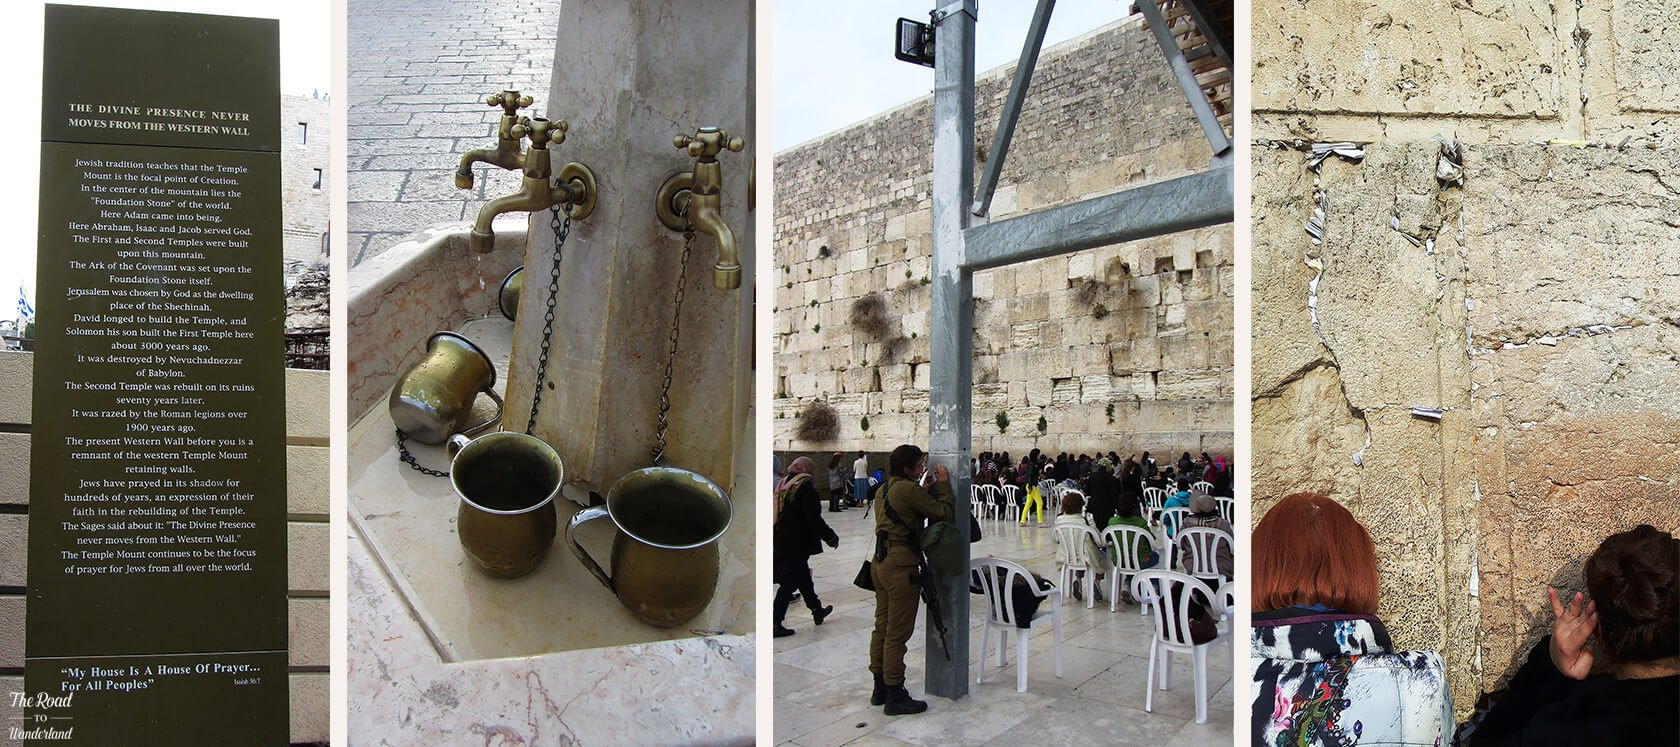 Rituals at the Western Wall